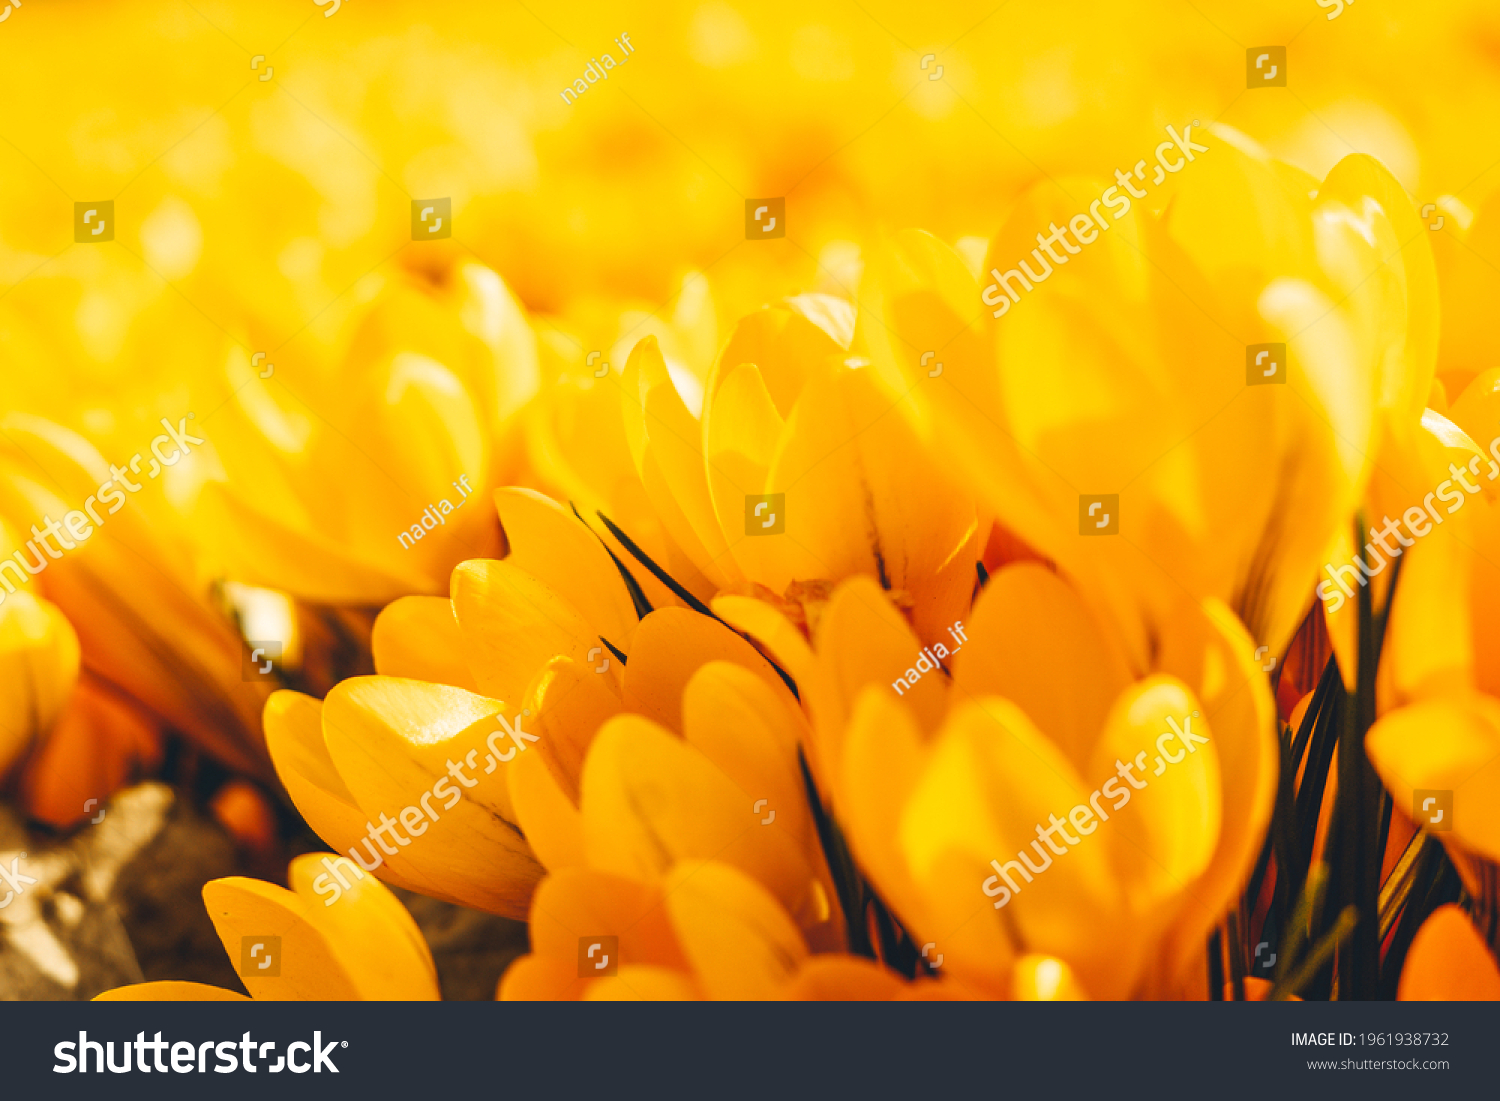 Yellow crocuses in the early spring. High quality photo #1961938732